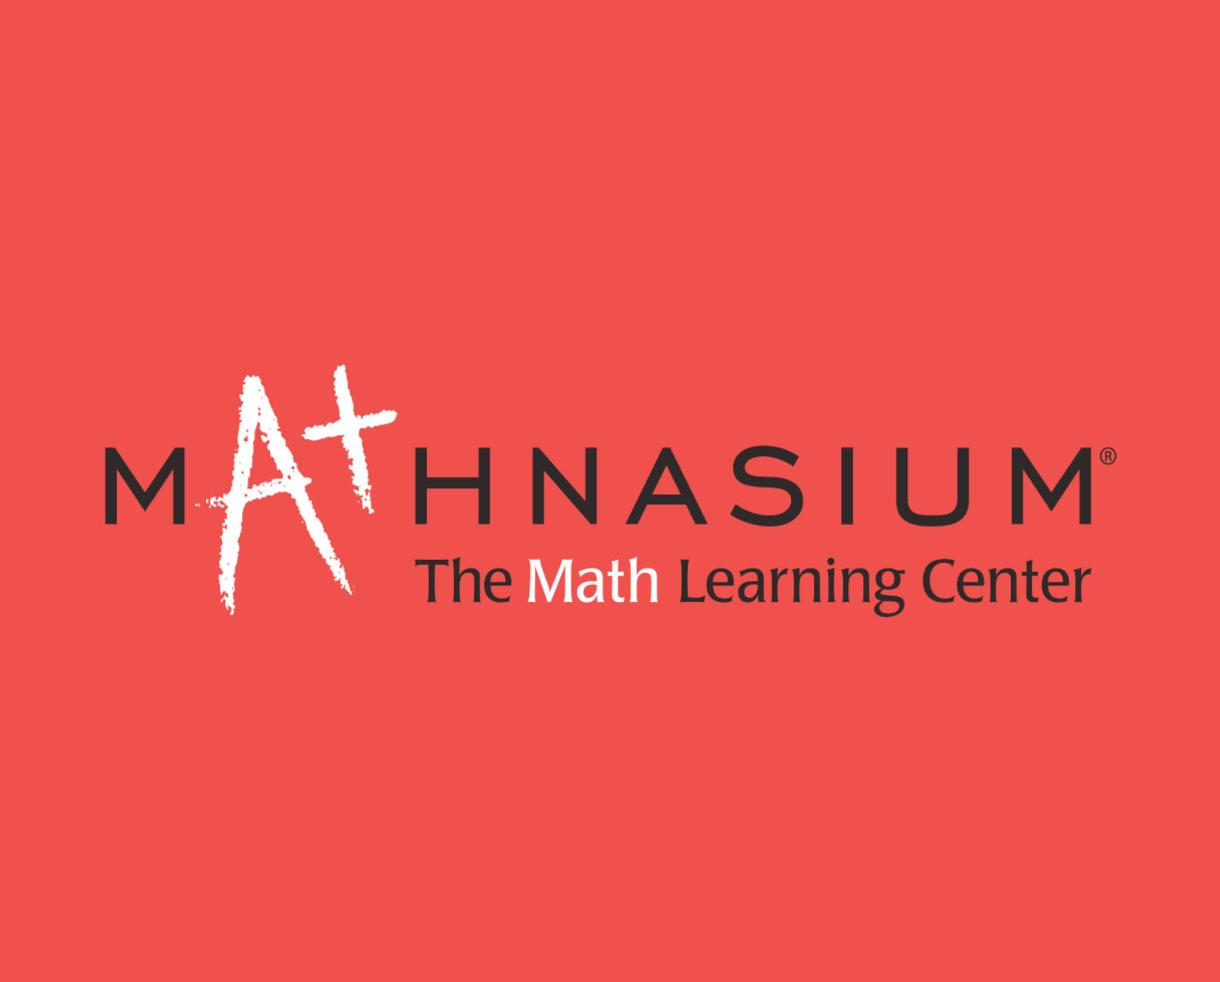 $99 for Mathnasium Learning Assessment and Two 1-Hour Tutoring Sessions - Ellicott City, Germantown, North Potomac, Potomac or Rockville - Registration Included! ($169 Value - 42% Off)